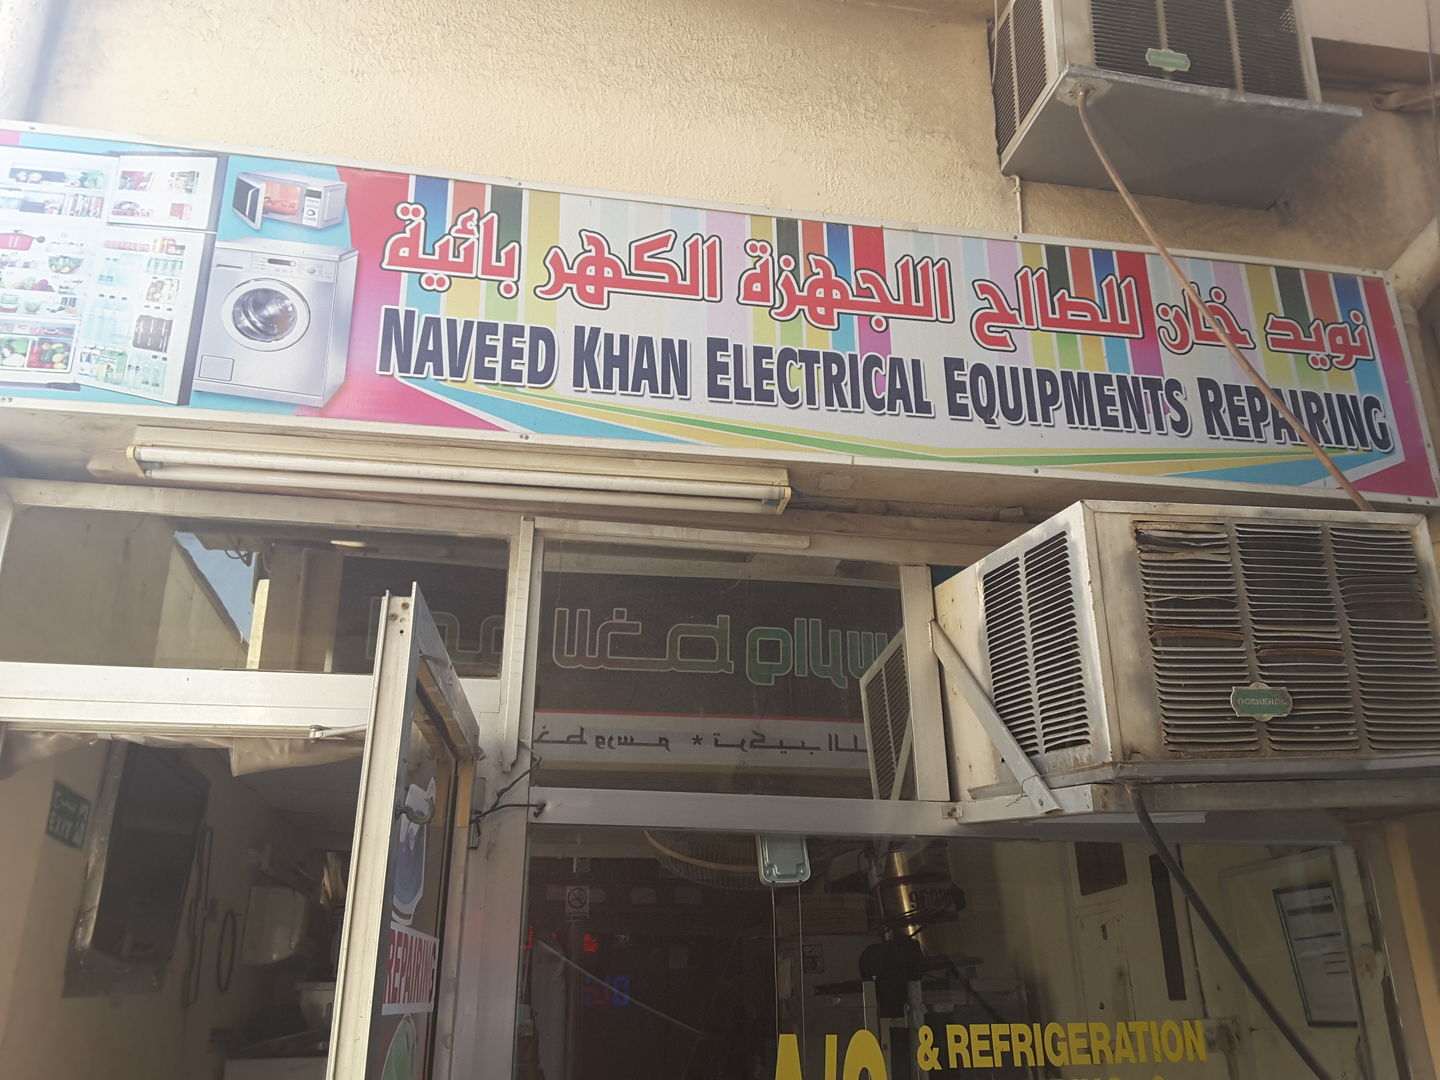 HiDubai-business-naveed-khan-electrical-equipment-repairing-home-handyman-maintenance-services-al-satwa-dubai-2